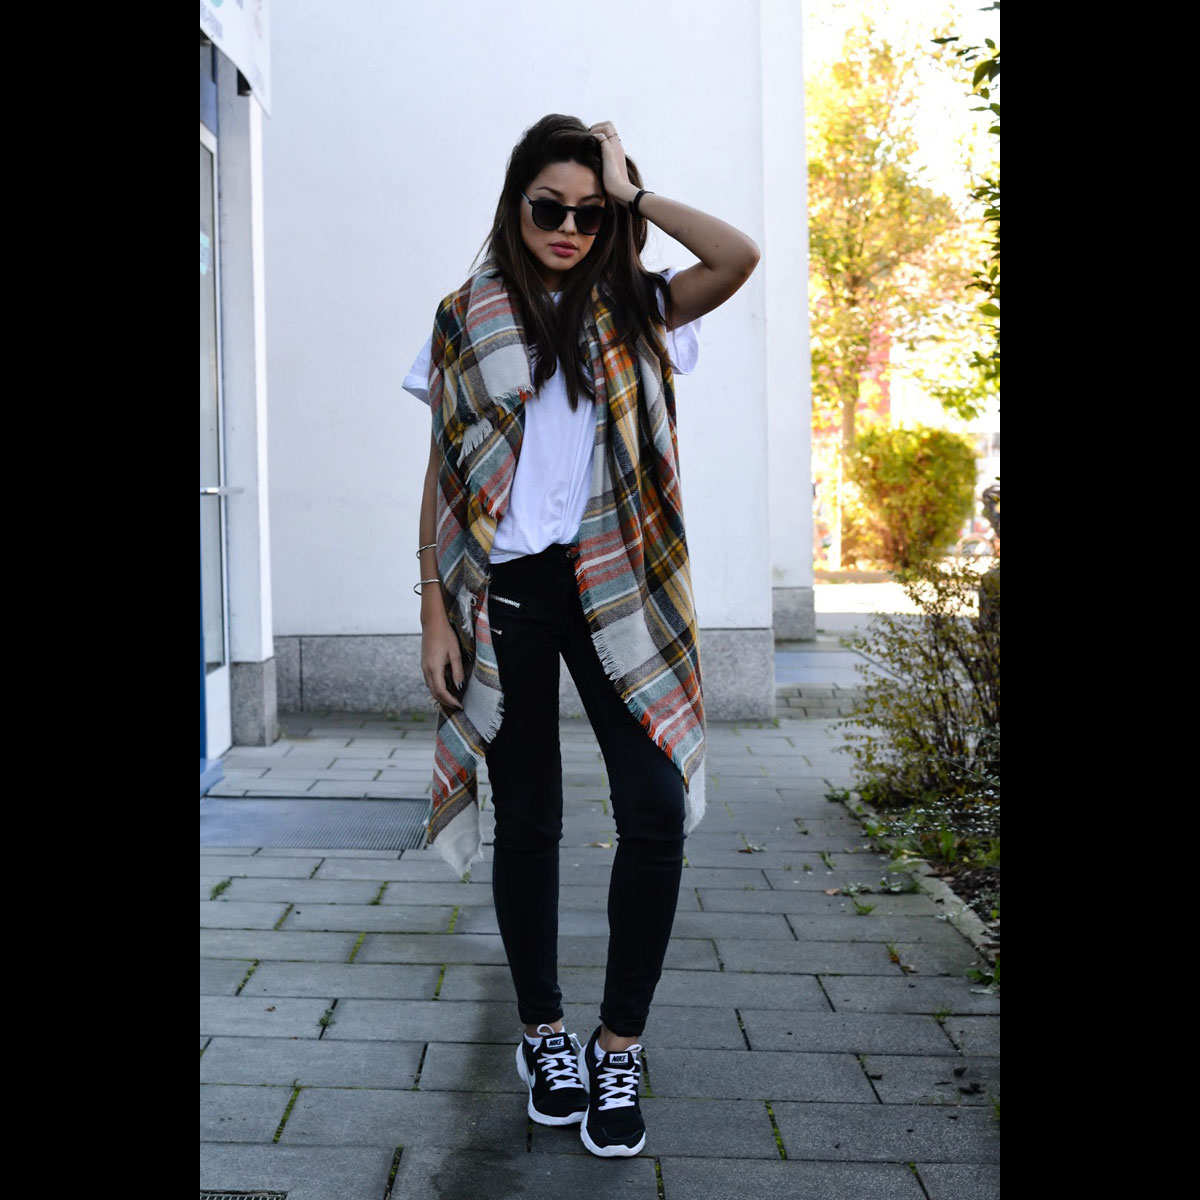 blanket-scarves-cocoaroundthecorner-plaid-sneakers-black-jeans-tee-via-coco-around-the-corner-the-cut